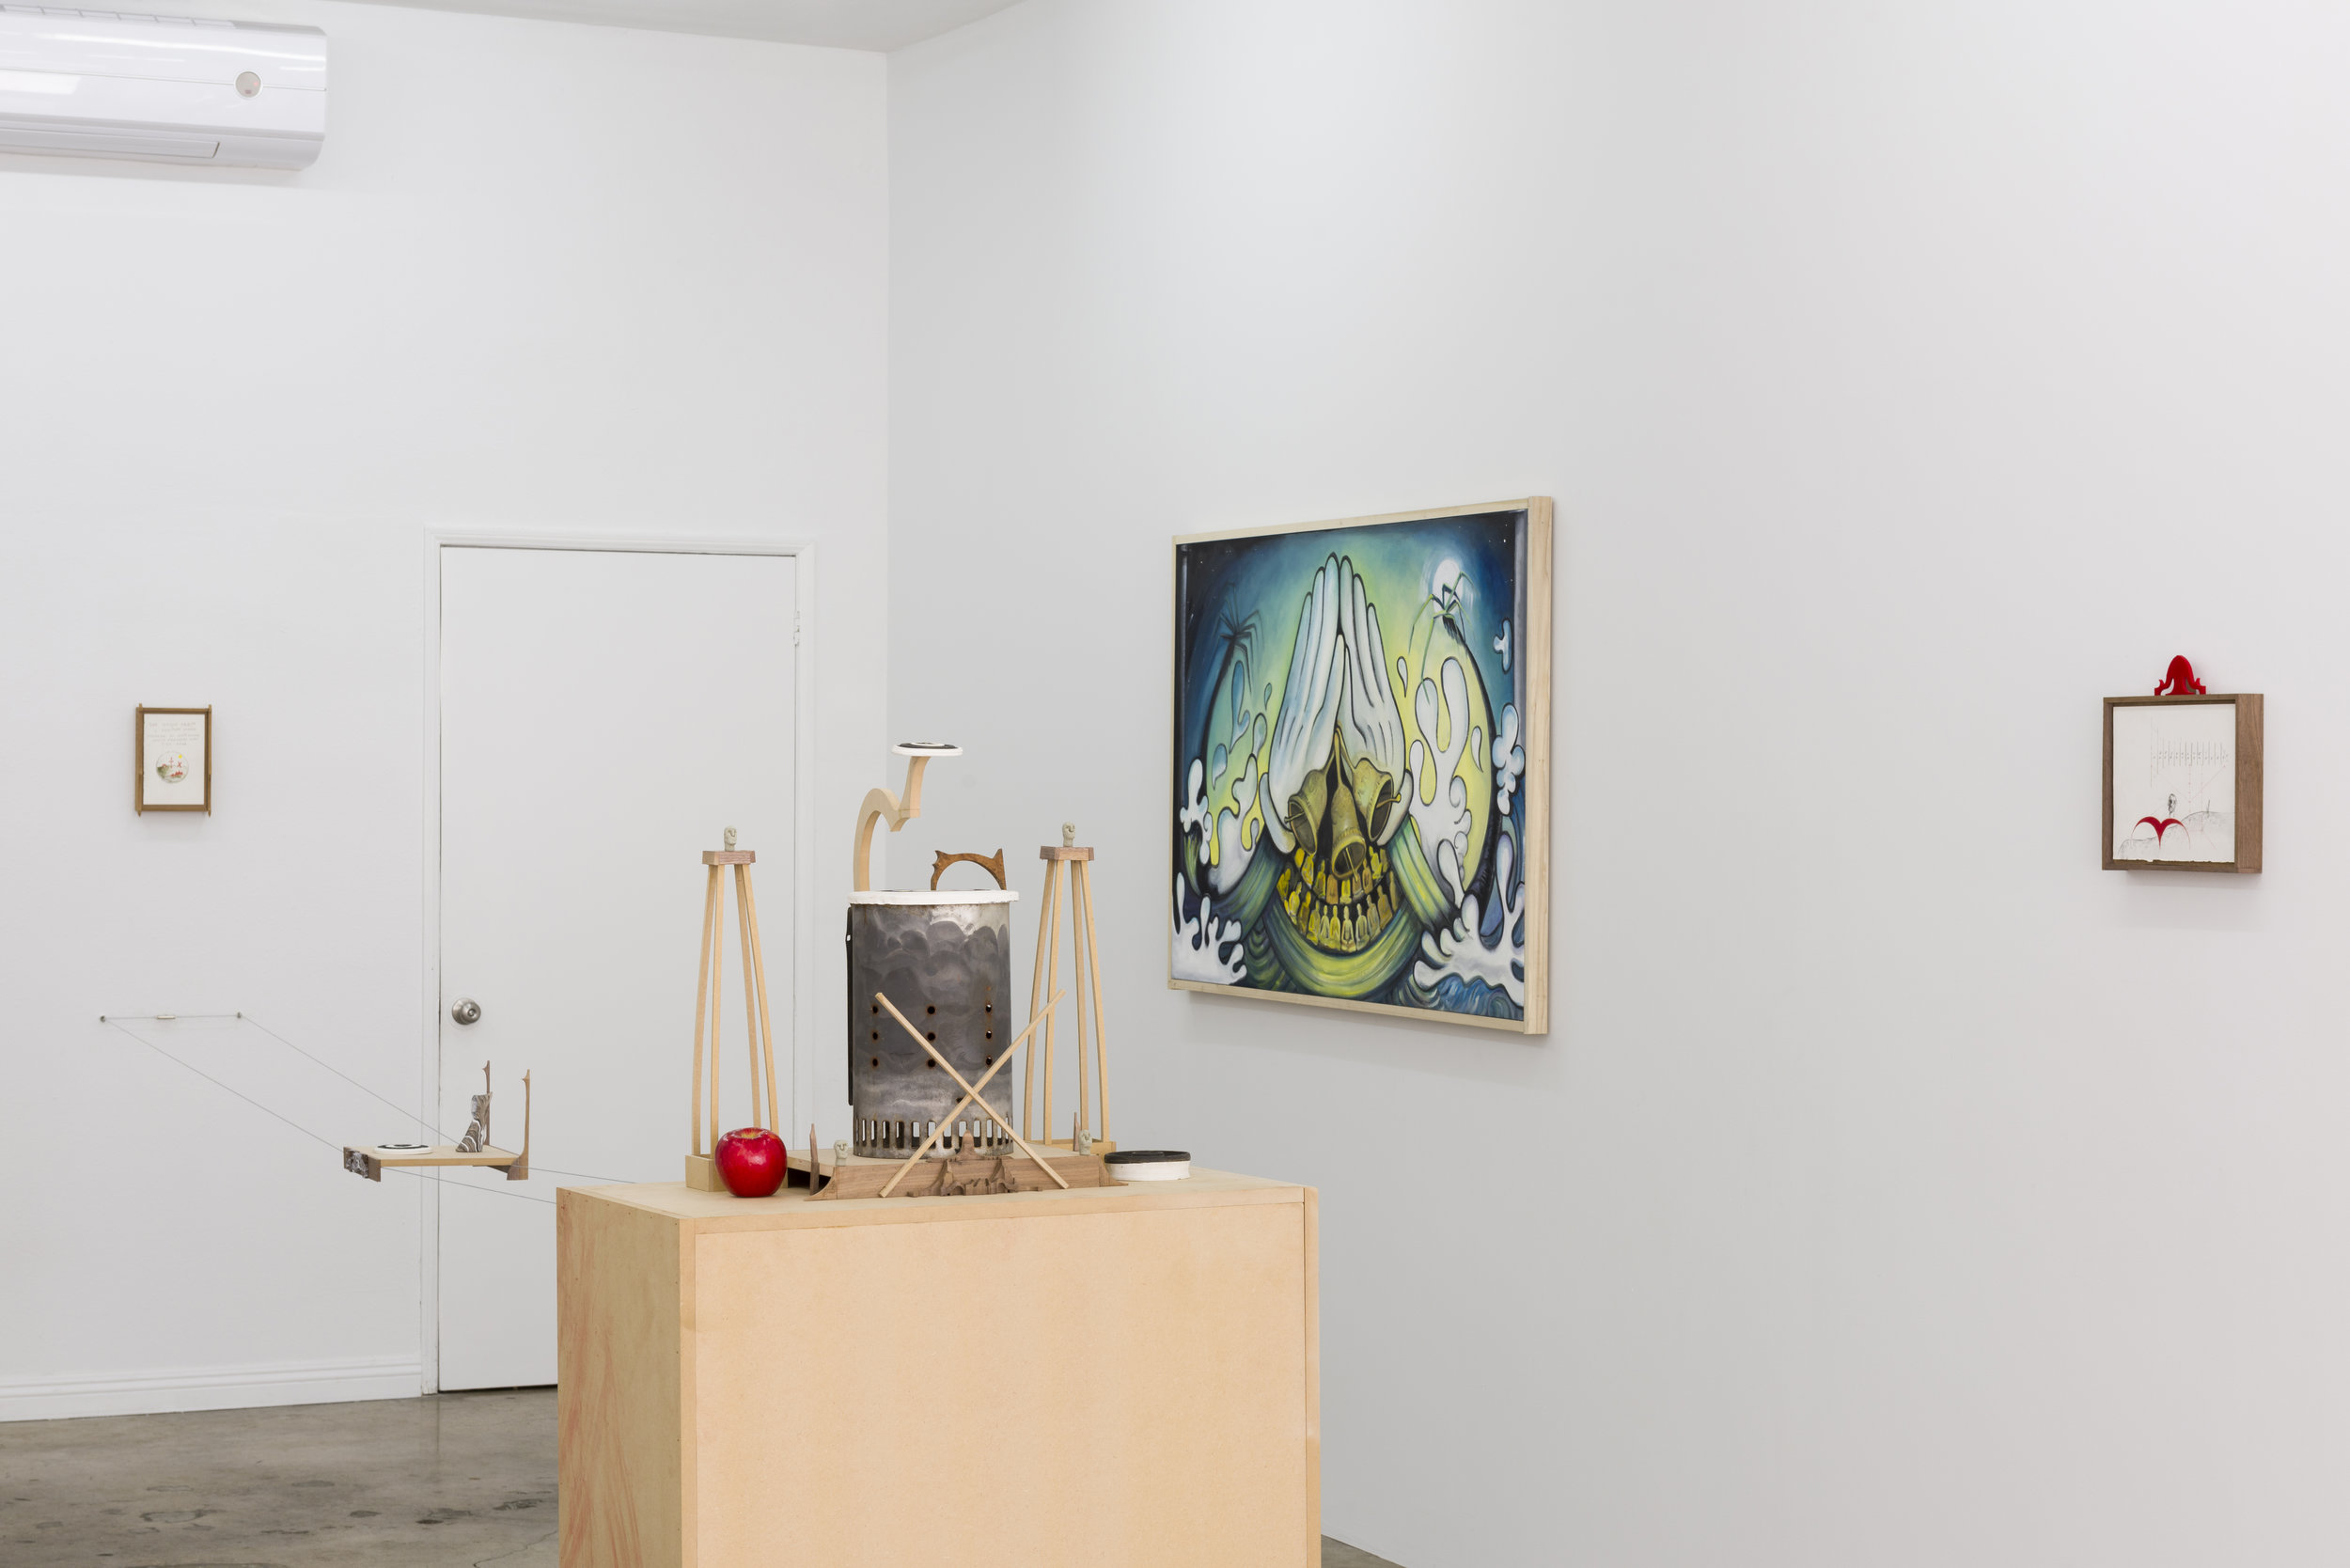 Installation view of  The Institute for Chaotic Love & Healing  R. Lord, Harry Gould Harvey IV, DJ Richard  May 19 - June 30, 2019  Photo by Ruben Diaz   Link to press release.